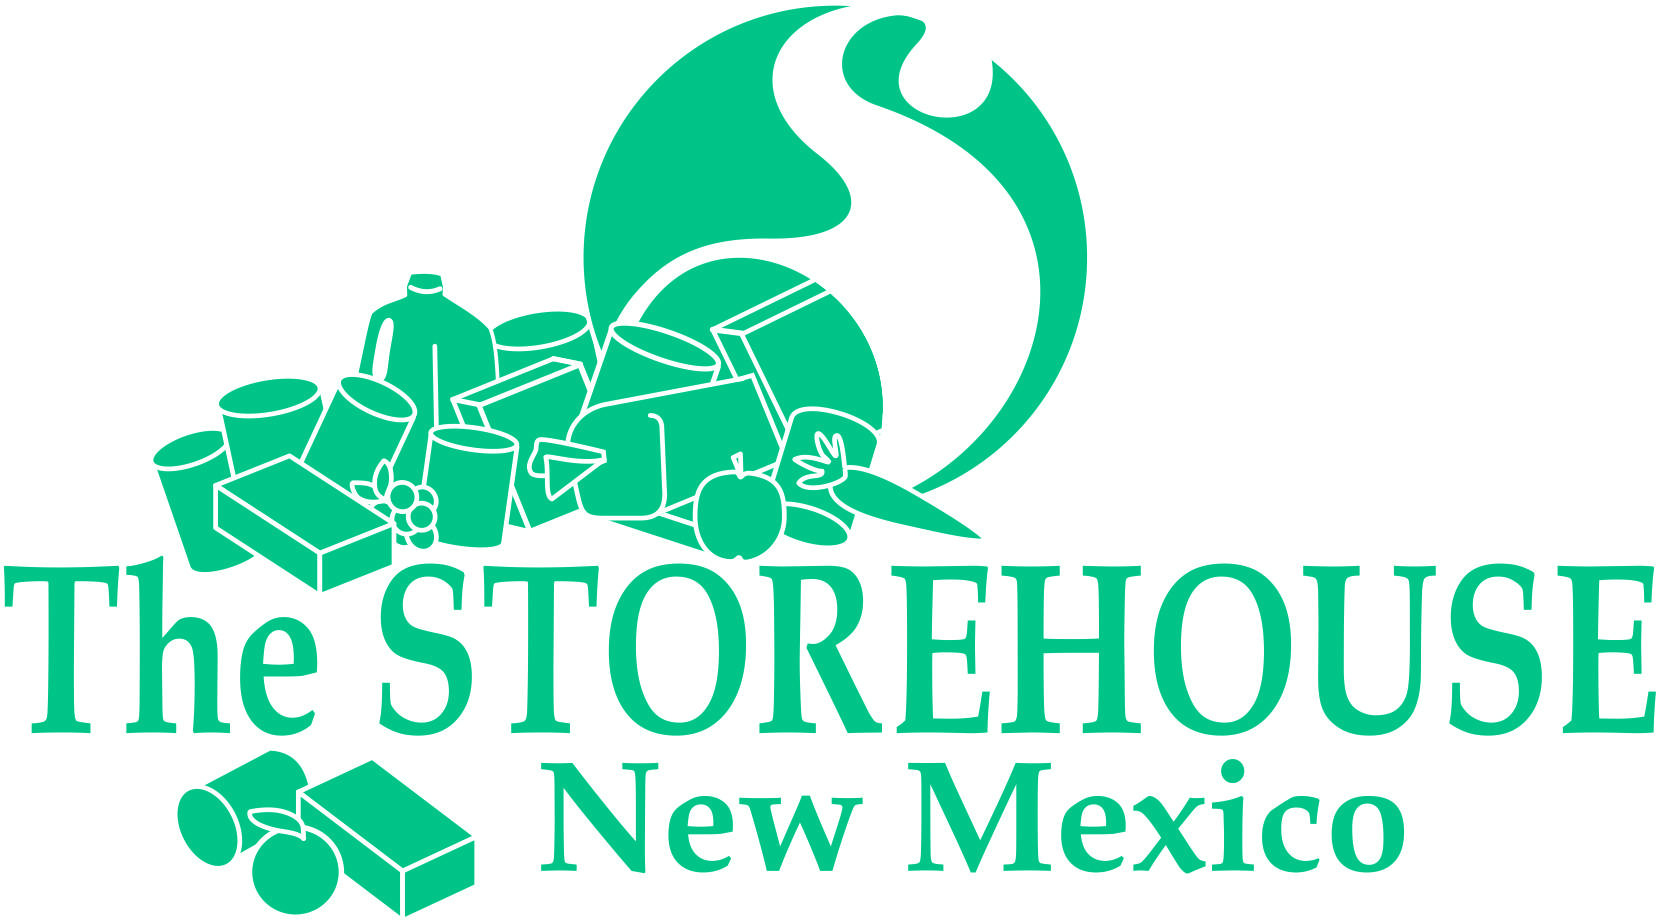 The Storehouse New Mexico